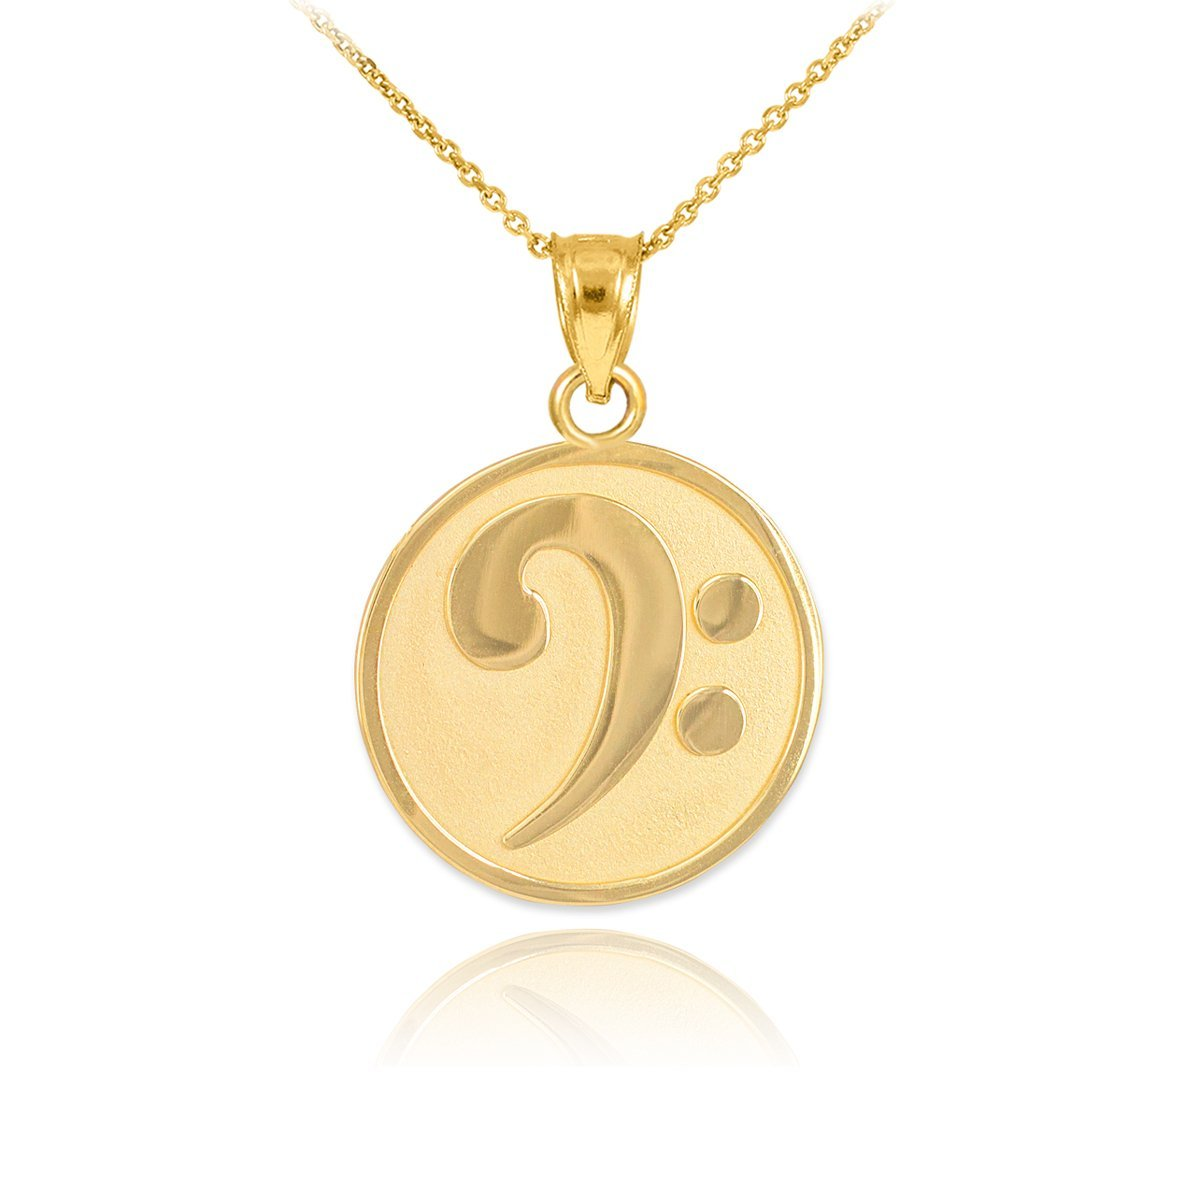 10k Yellow Gold Musical Notation Charm Bass Clef Pendant Necklace